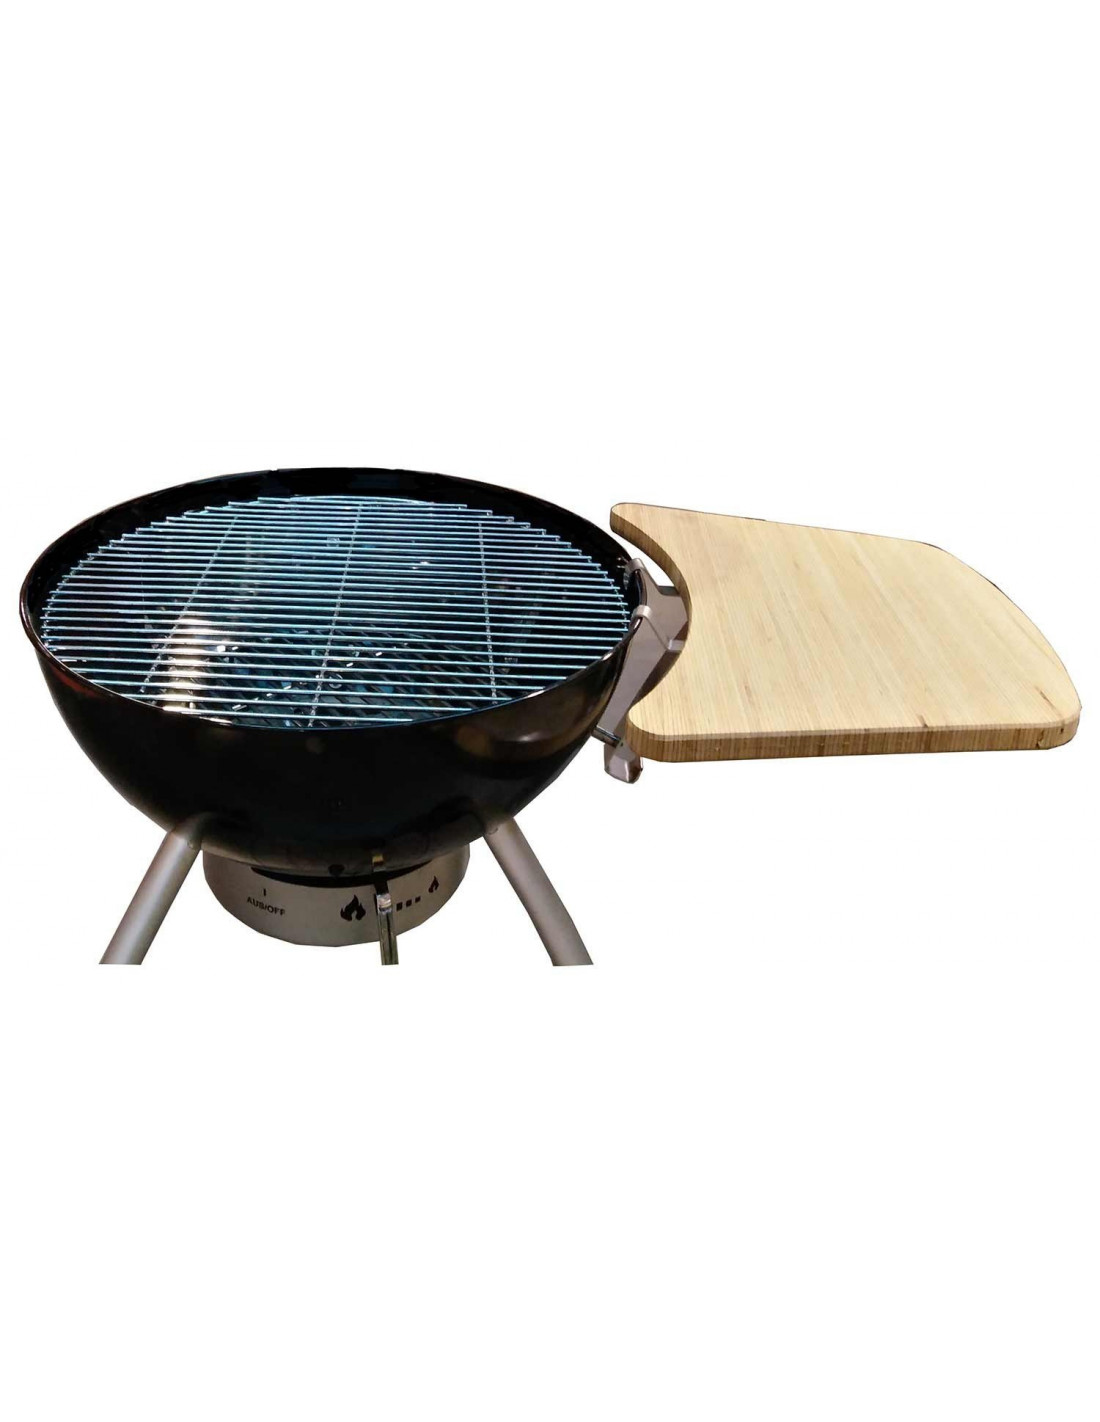 Barbecue Weber Cheminee Barbecue Master Touch Gbs E 5750 Noir